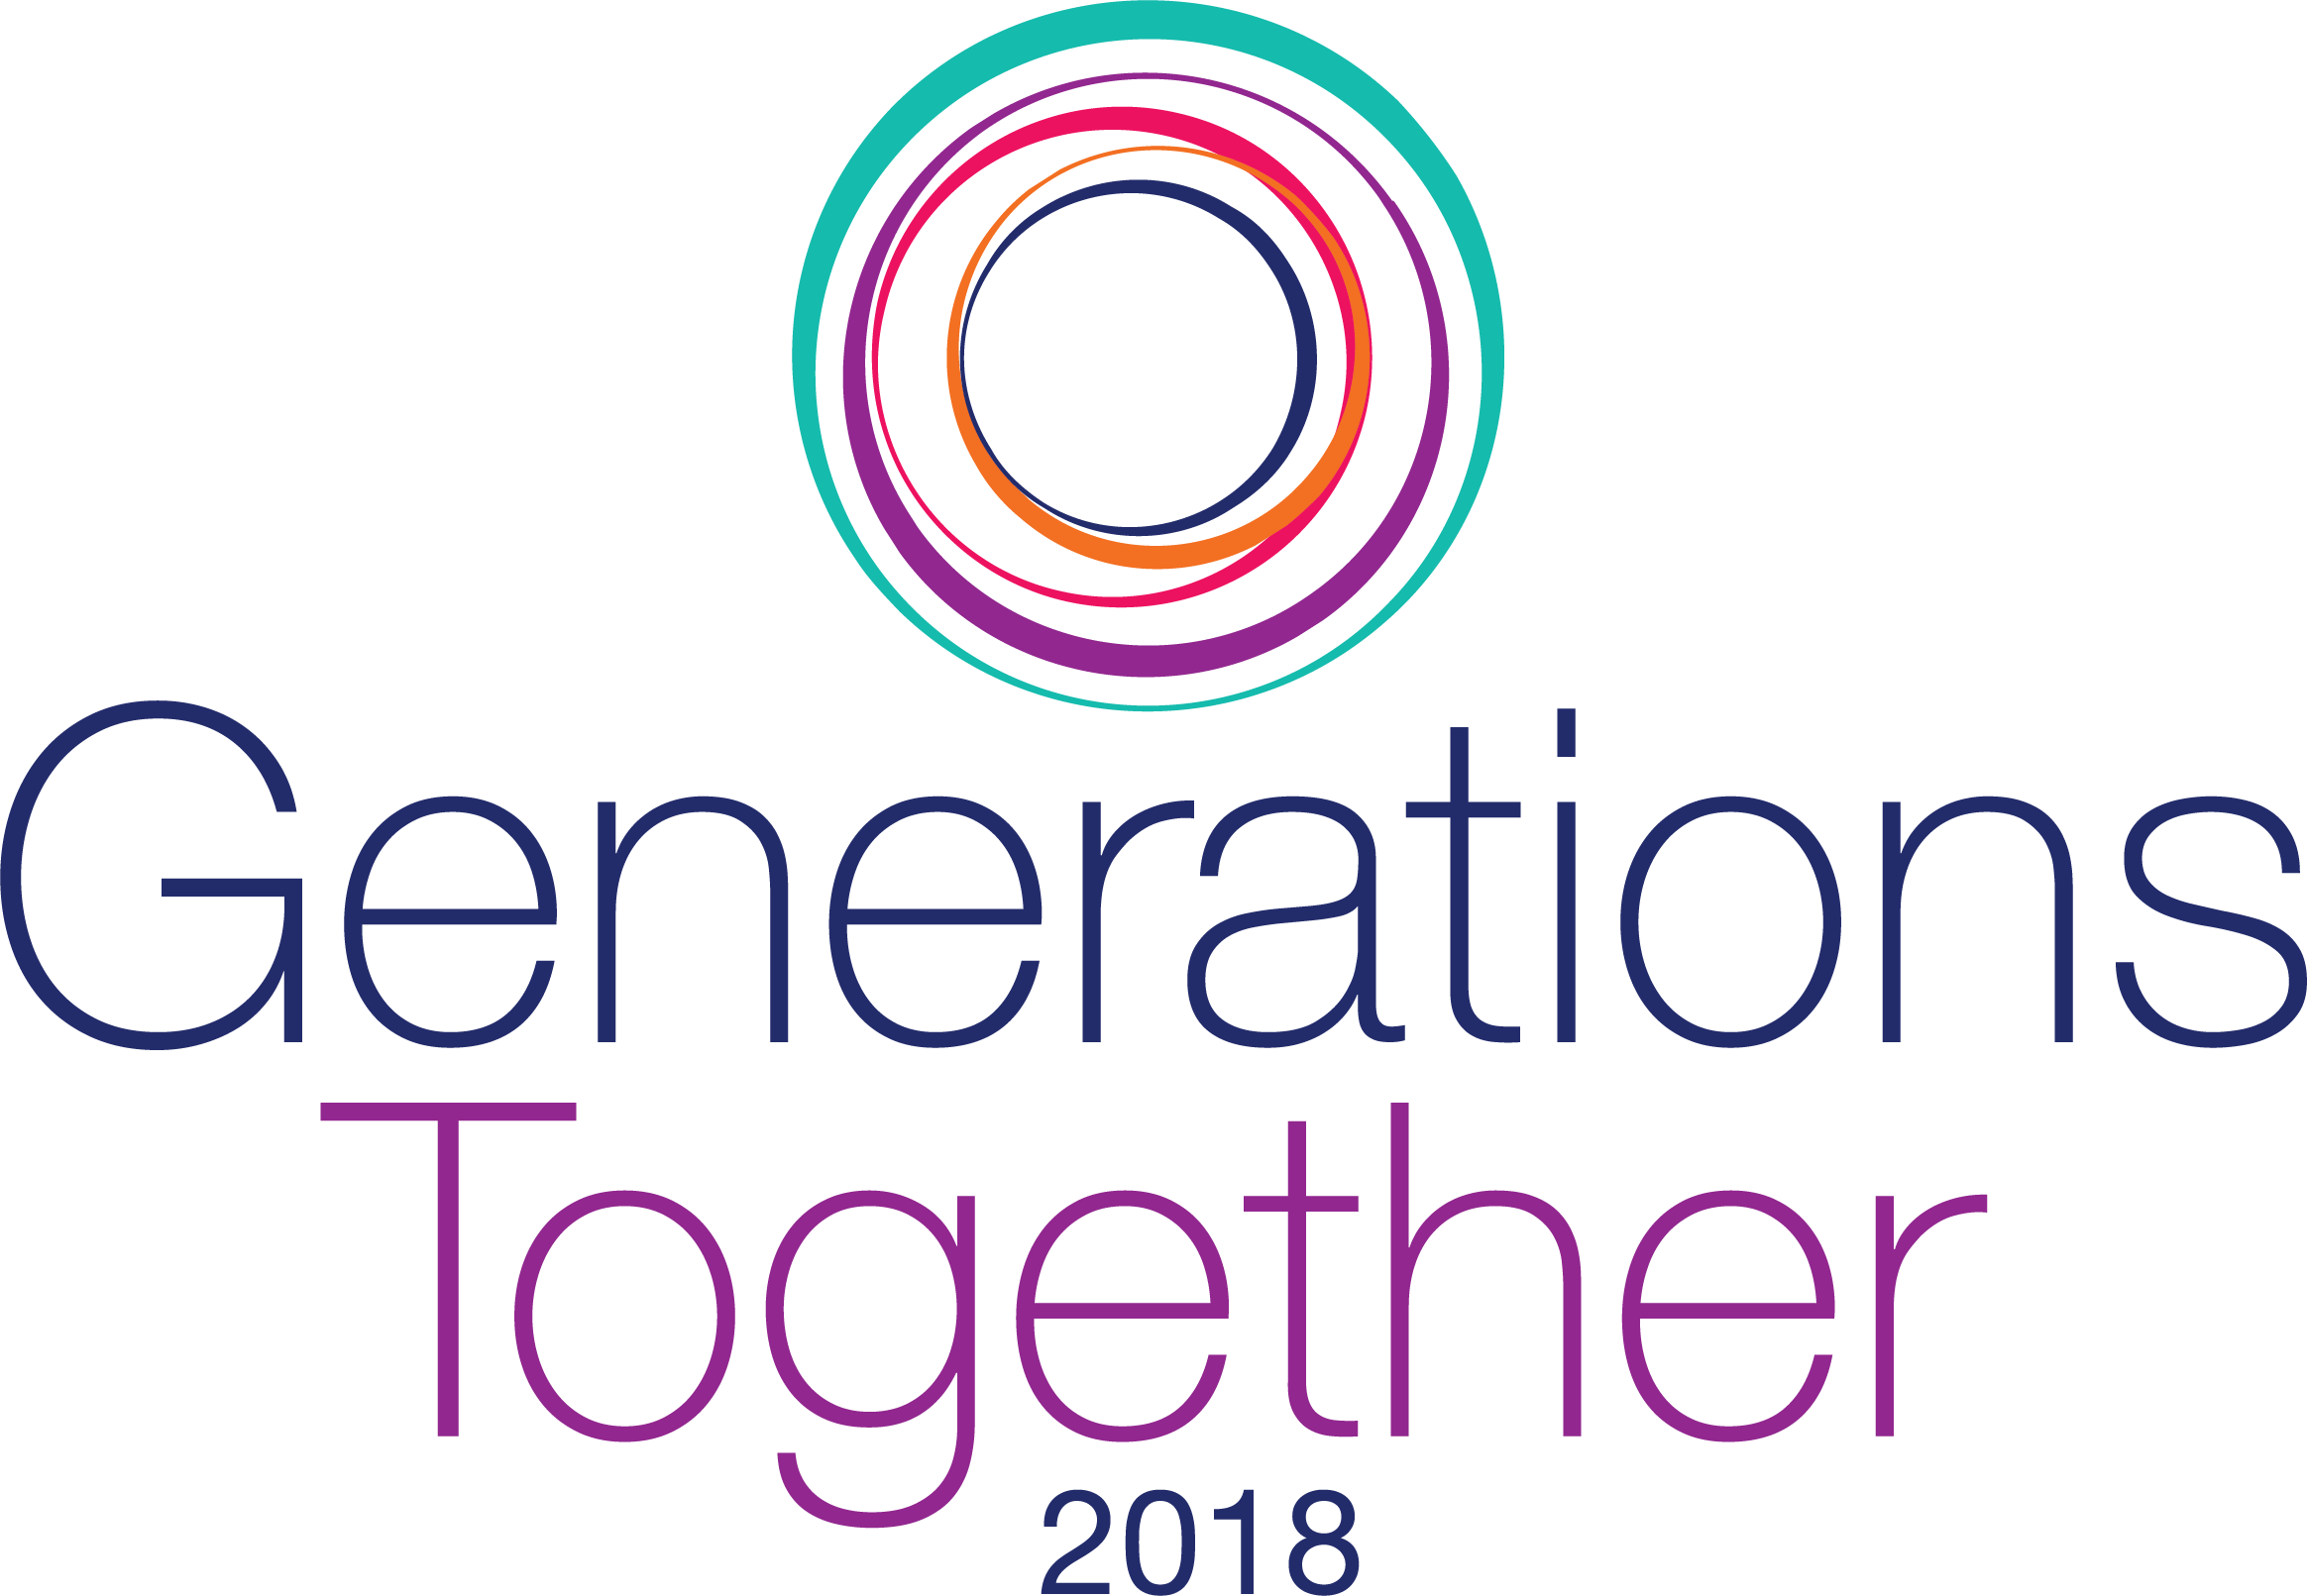 Generations Together 2018 Horizontal Logo.png